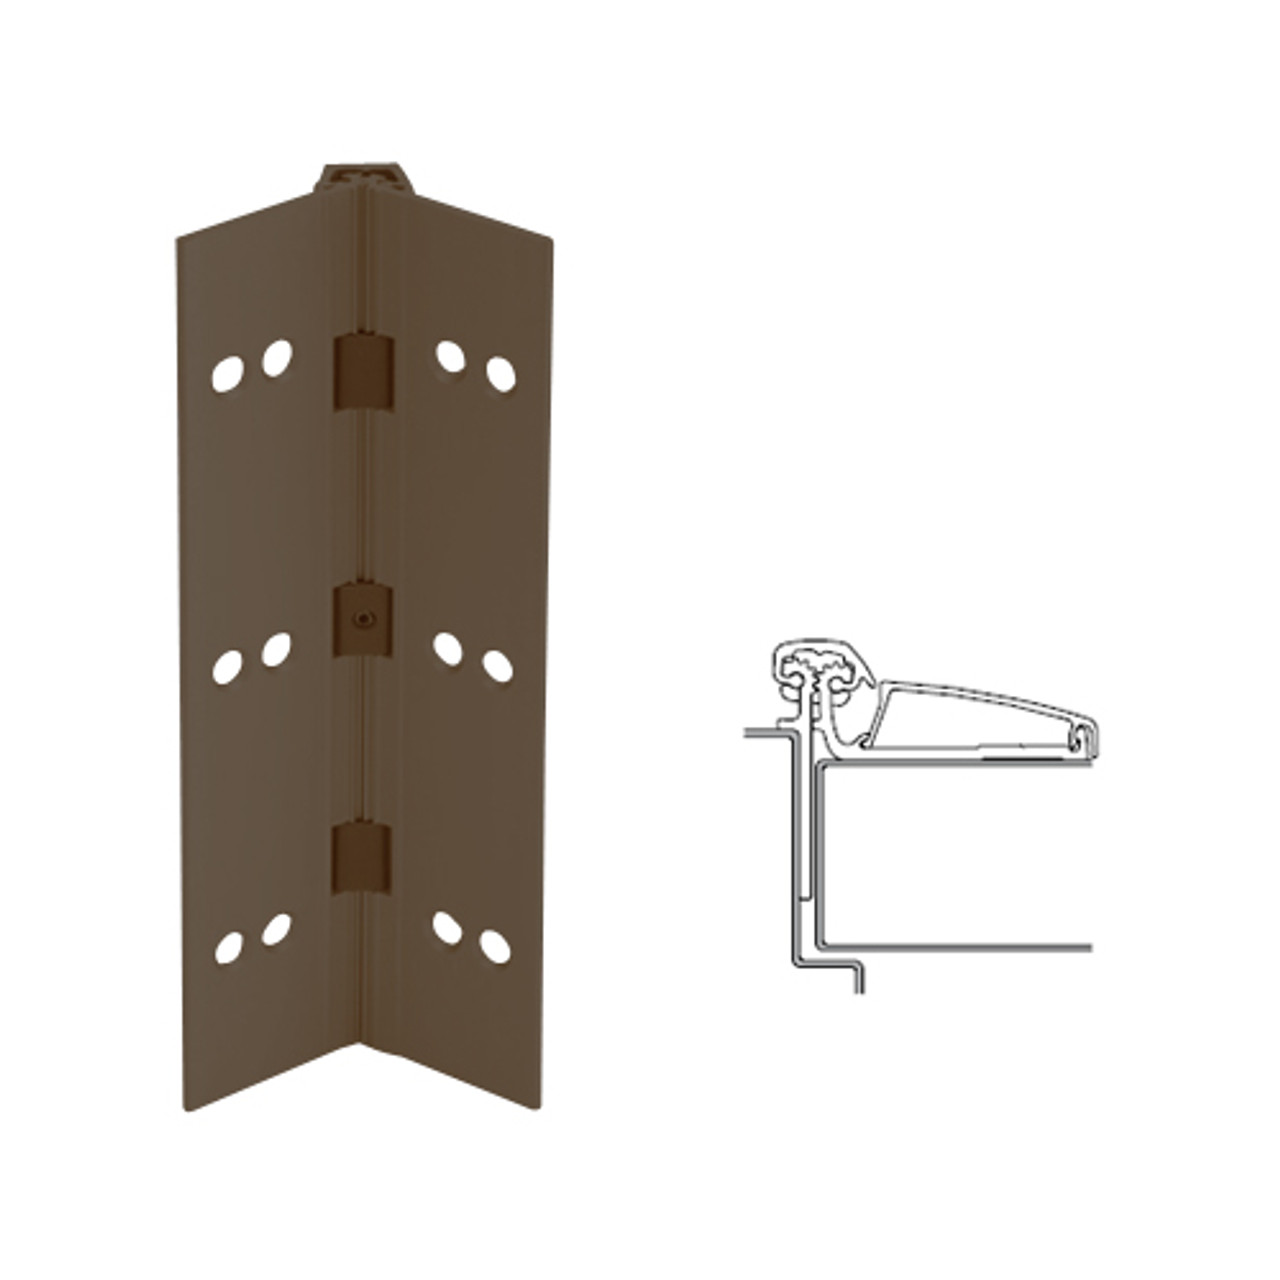 045XY-313AN-120-WD IVES Adjustable Half Surface Continuous Geared Hinges with Wood Screws in Dark Bronze Anodized